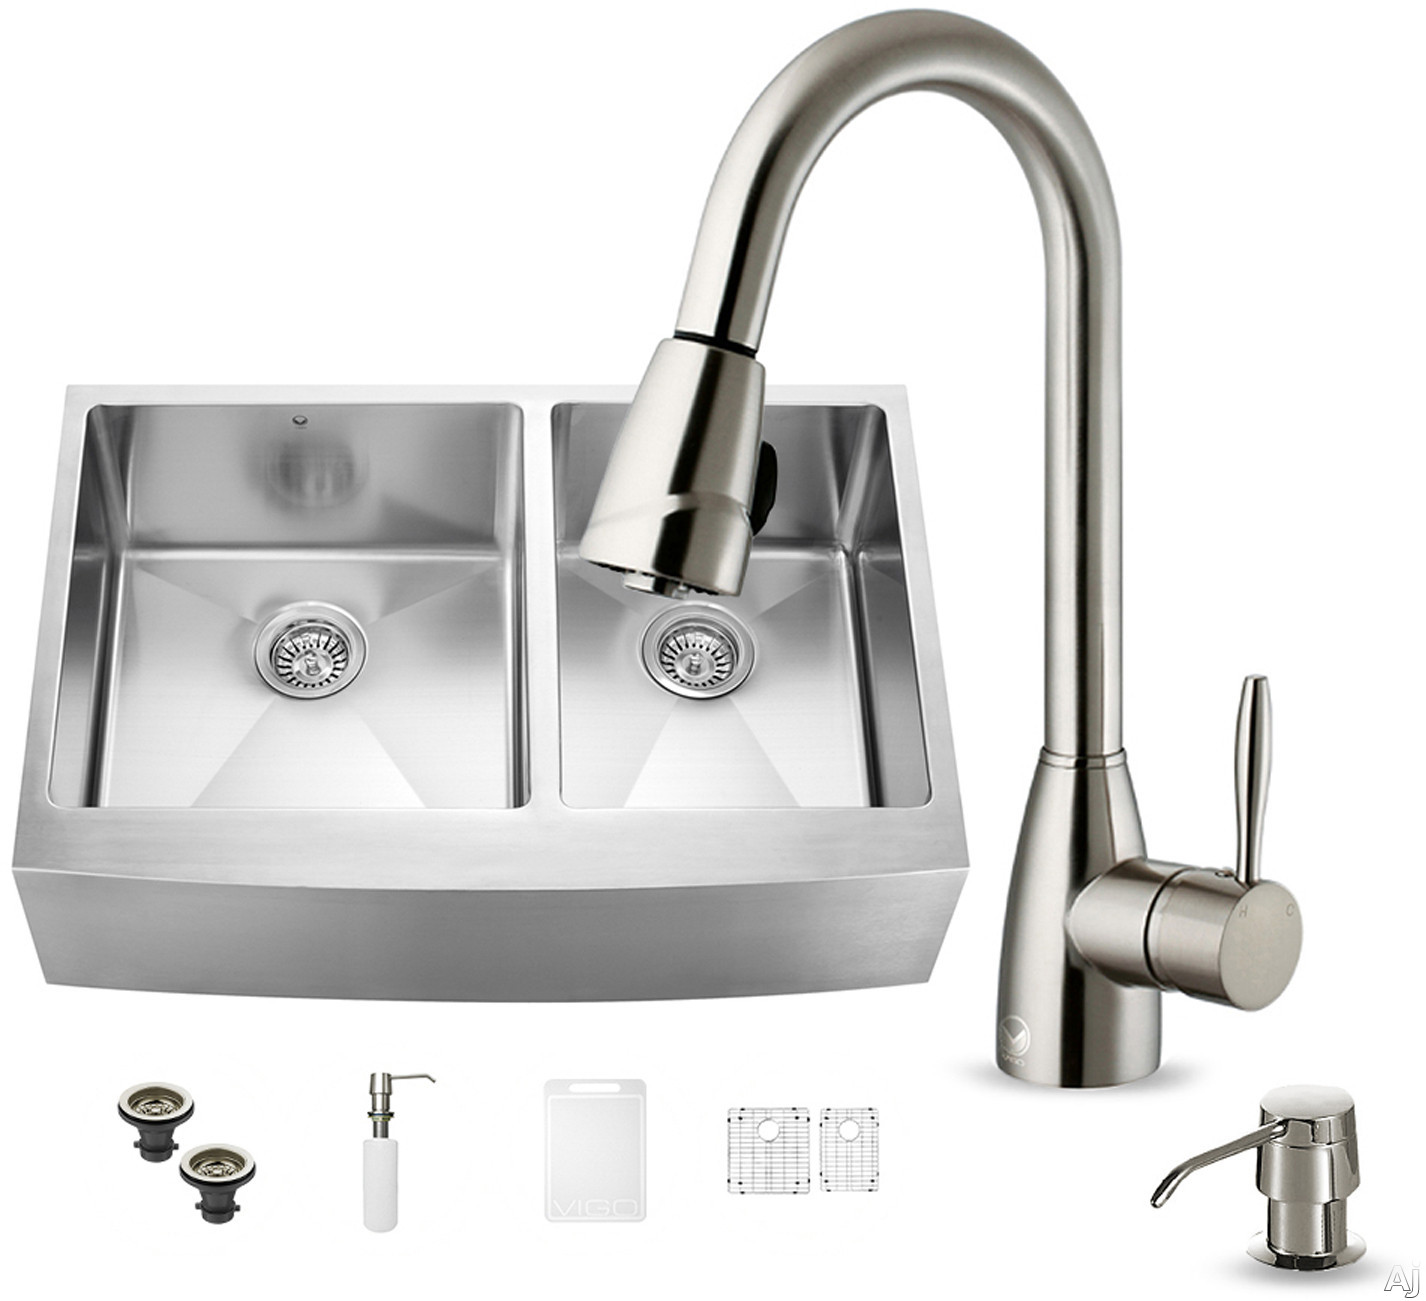 Vigo Industries VG15215 33 Inch Farmhouse Stainless Steel Double Bowl Kitchen Sink with 9 7/8 Inch Bowl Depths, 16-Gauge, Stainless Steel Faucet Set, Bottom Grids, Strainers and Soap Dispenser